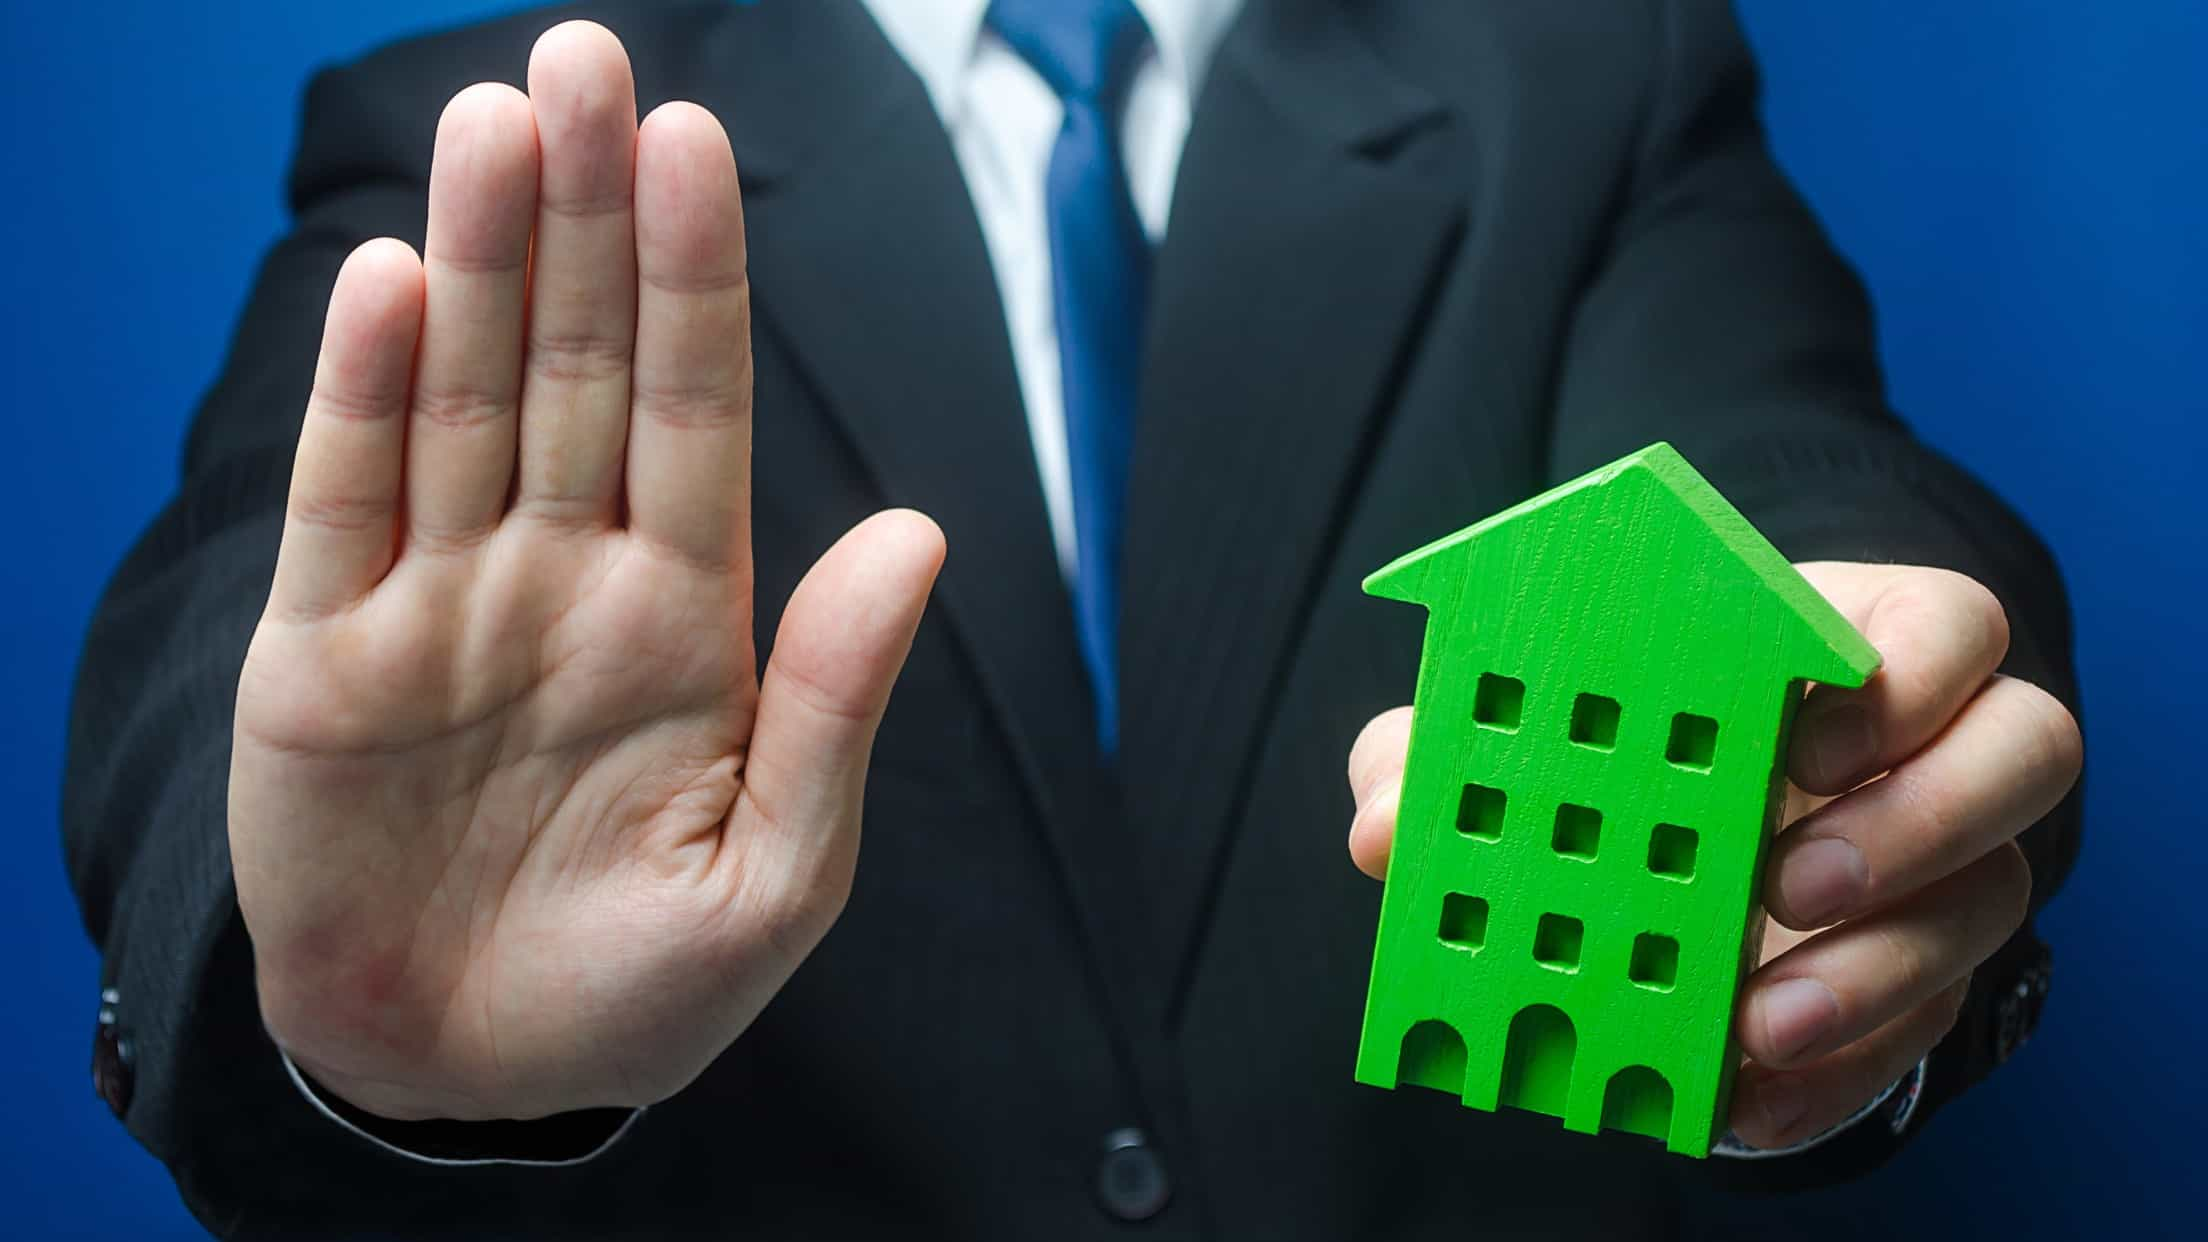 real estate investment trust trading halt represented by man holding hand up in stop motion and holding wooden block in the shape of a house